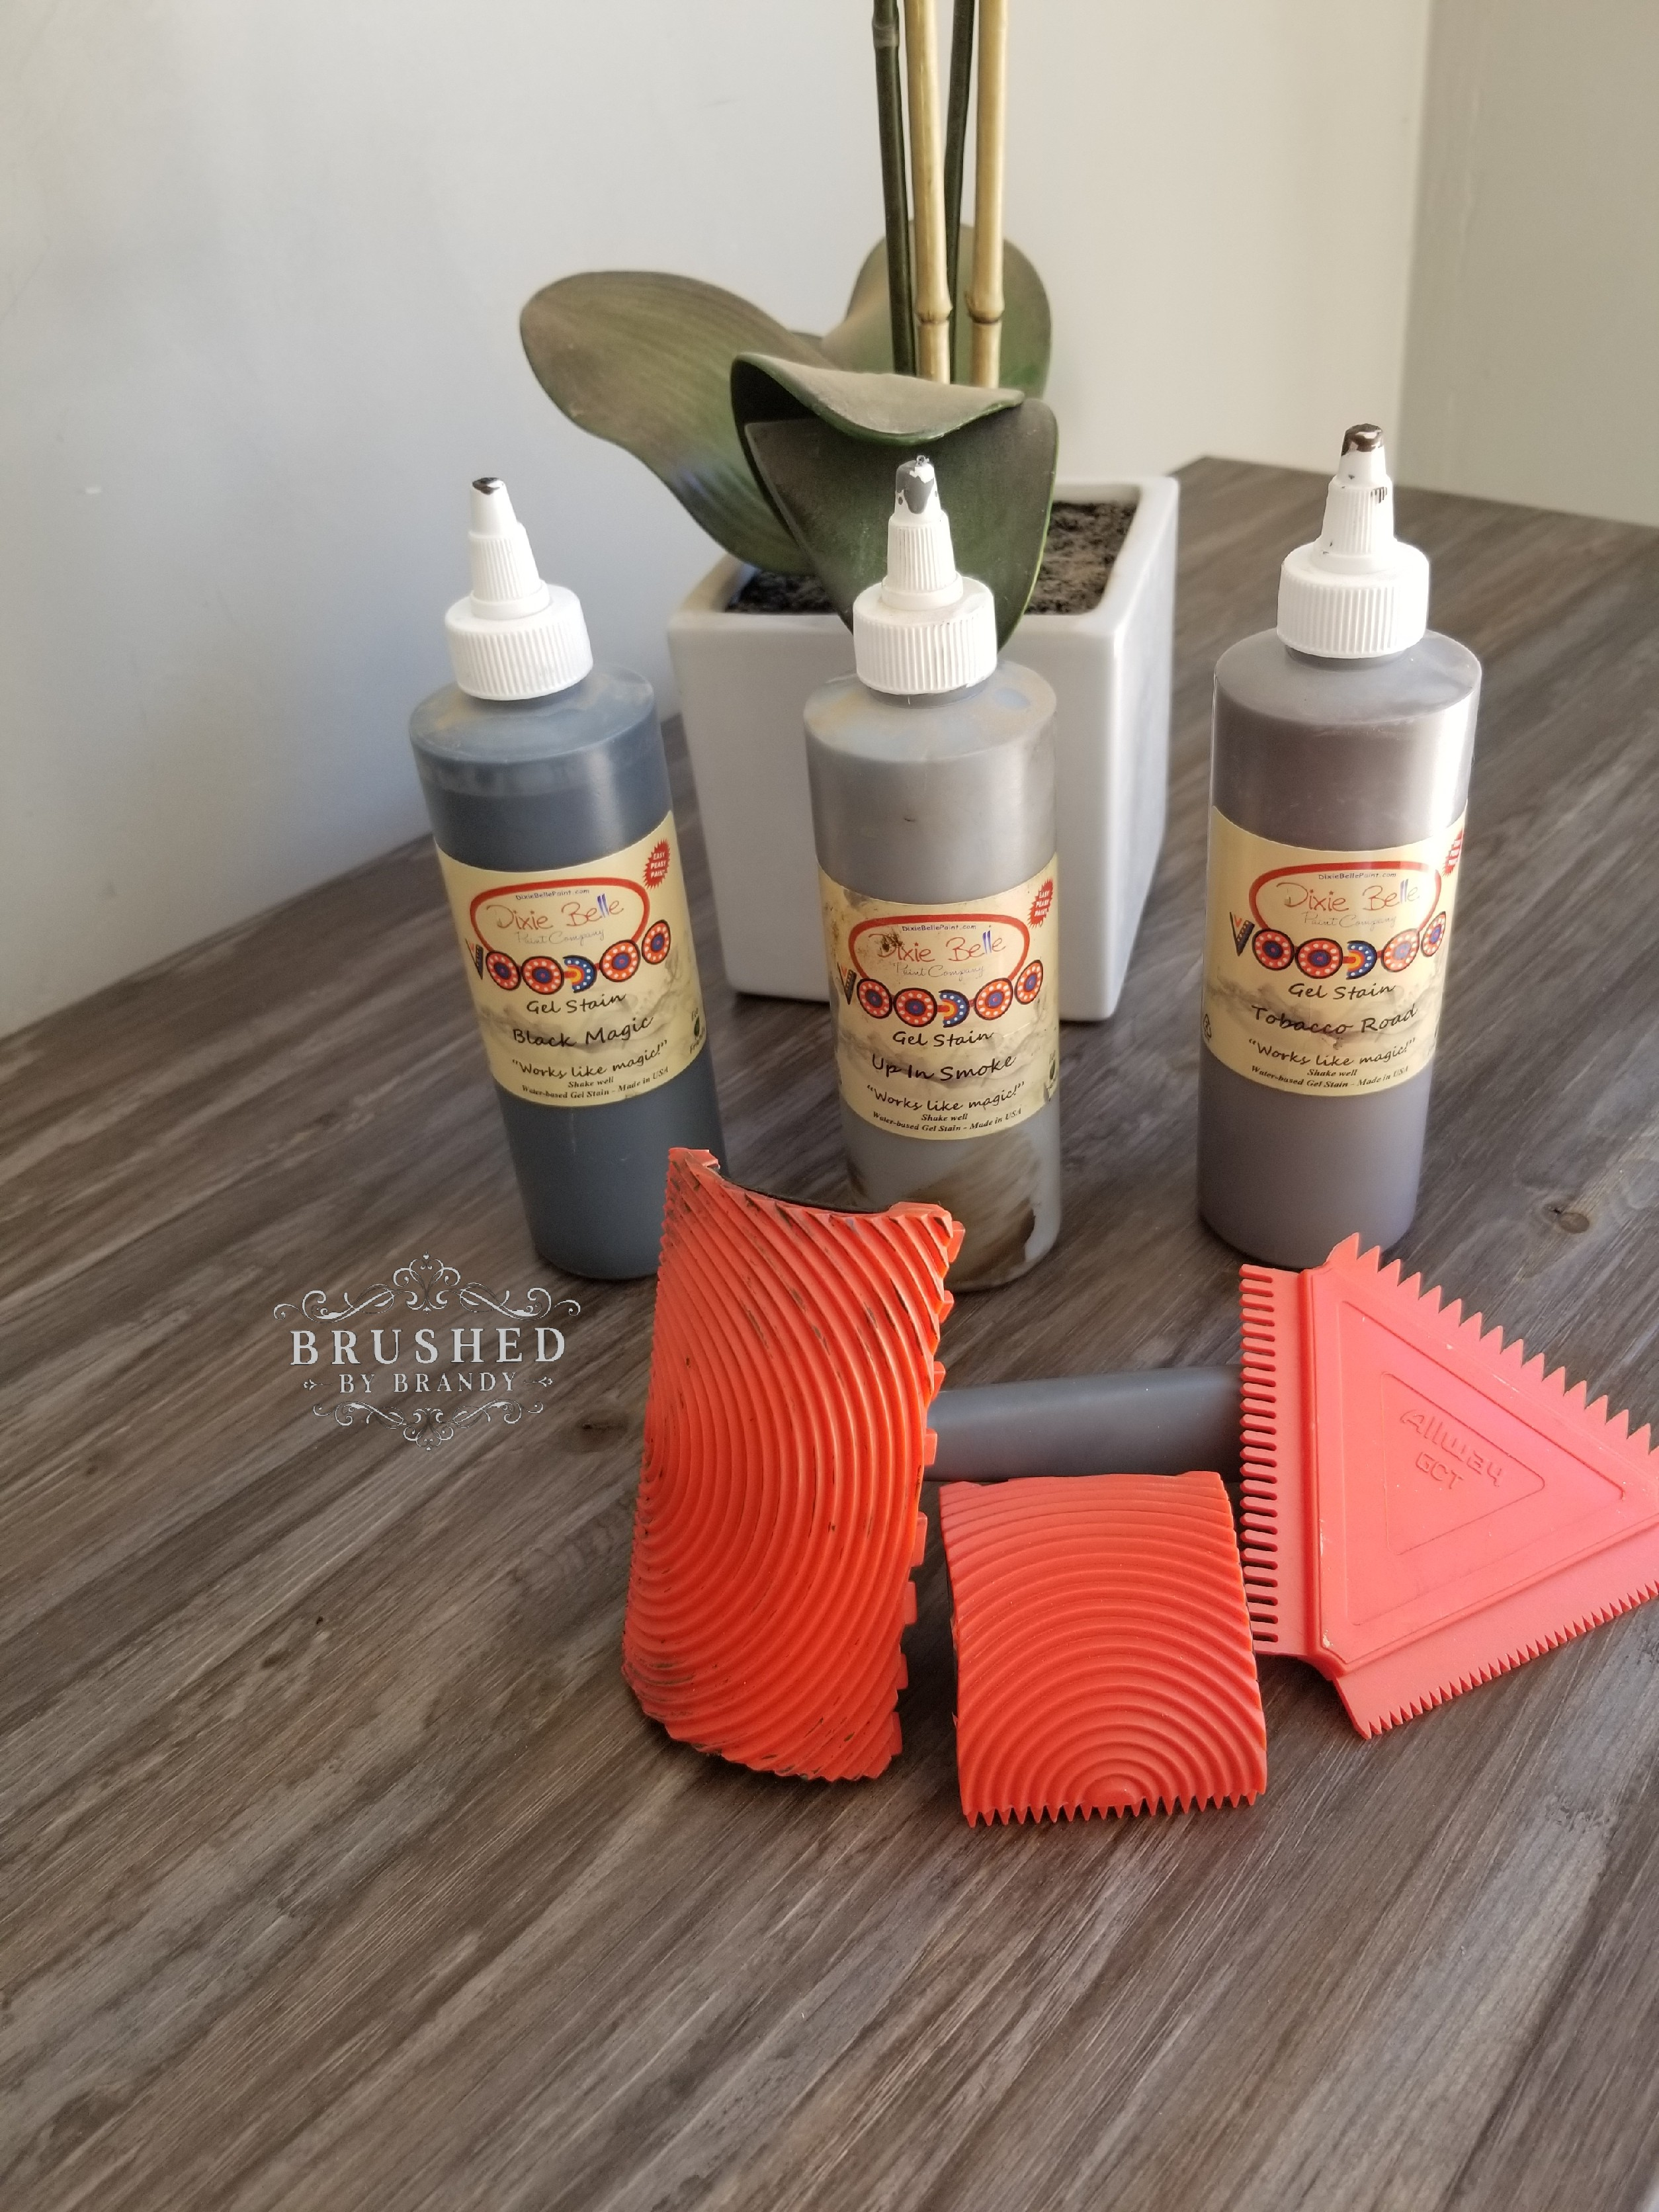 How to Create a Faux Wood Finish Voodoo Gel Stain and Wood Grain Tool r Brushed by Brandy